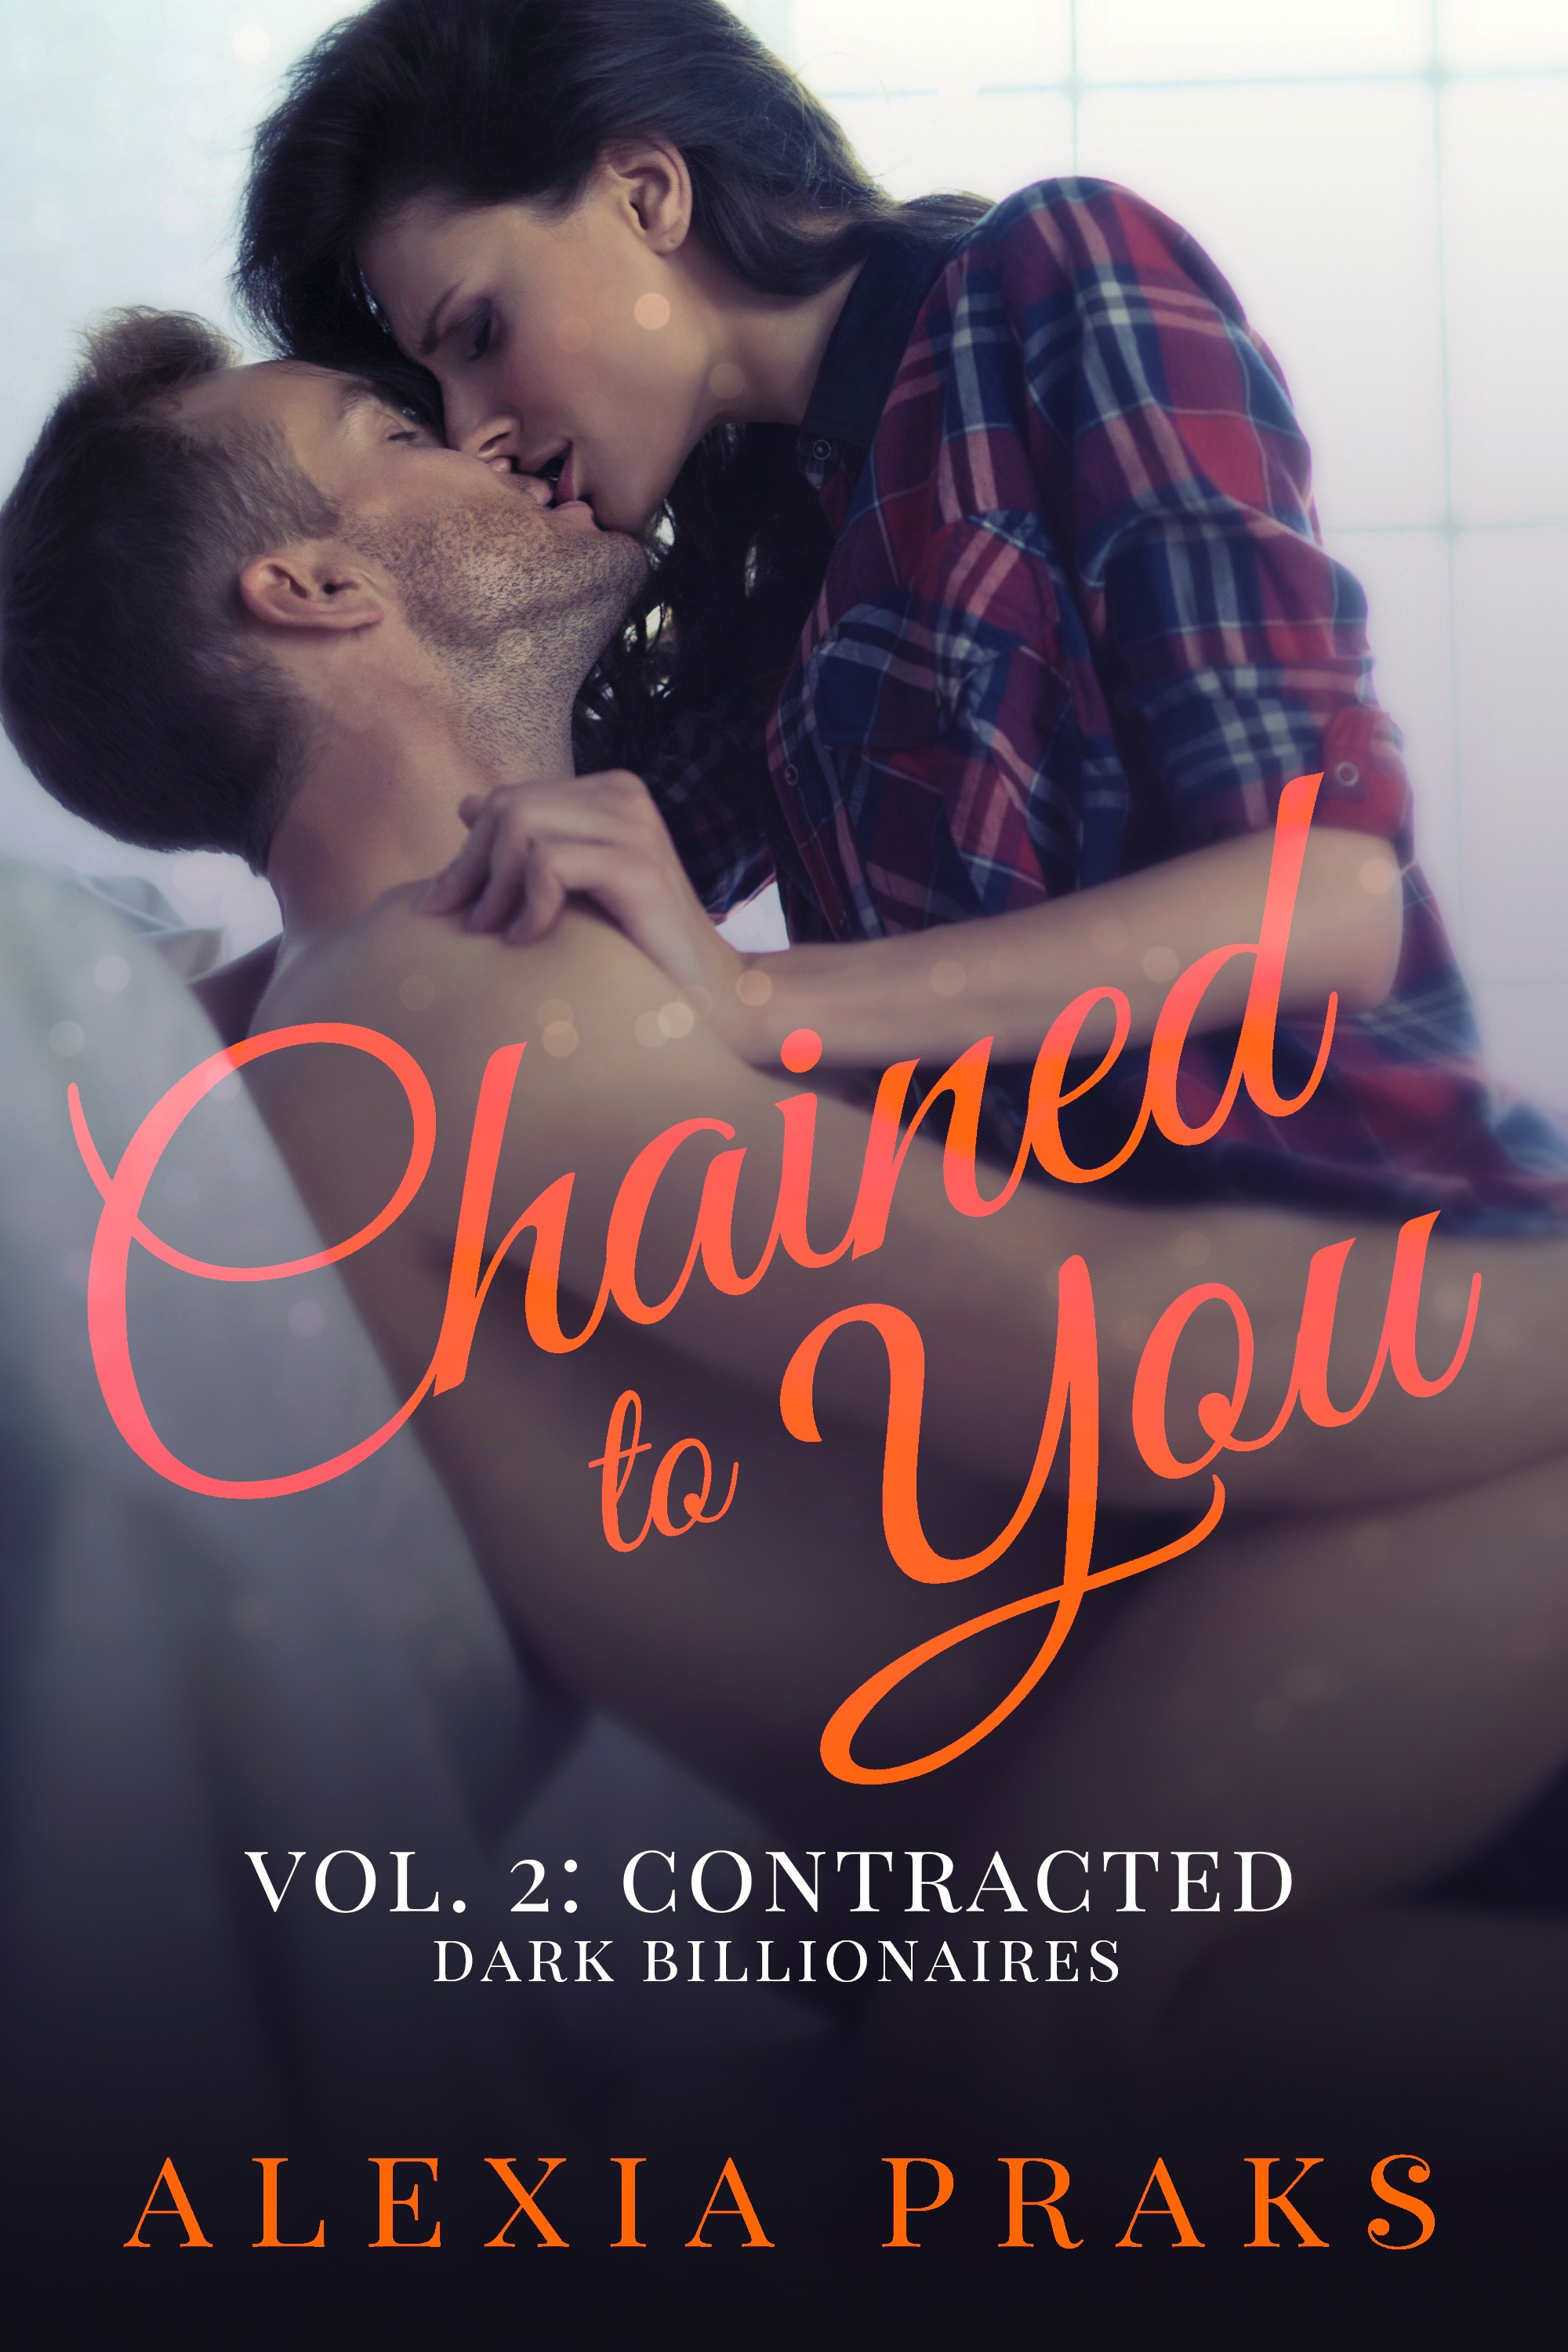 Chained to You Vol. 2: Contracted by Alexia Praks